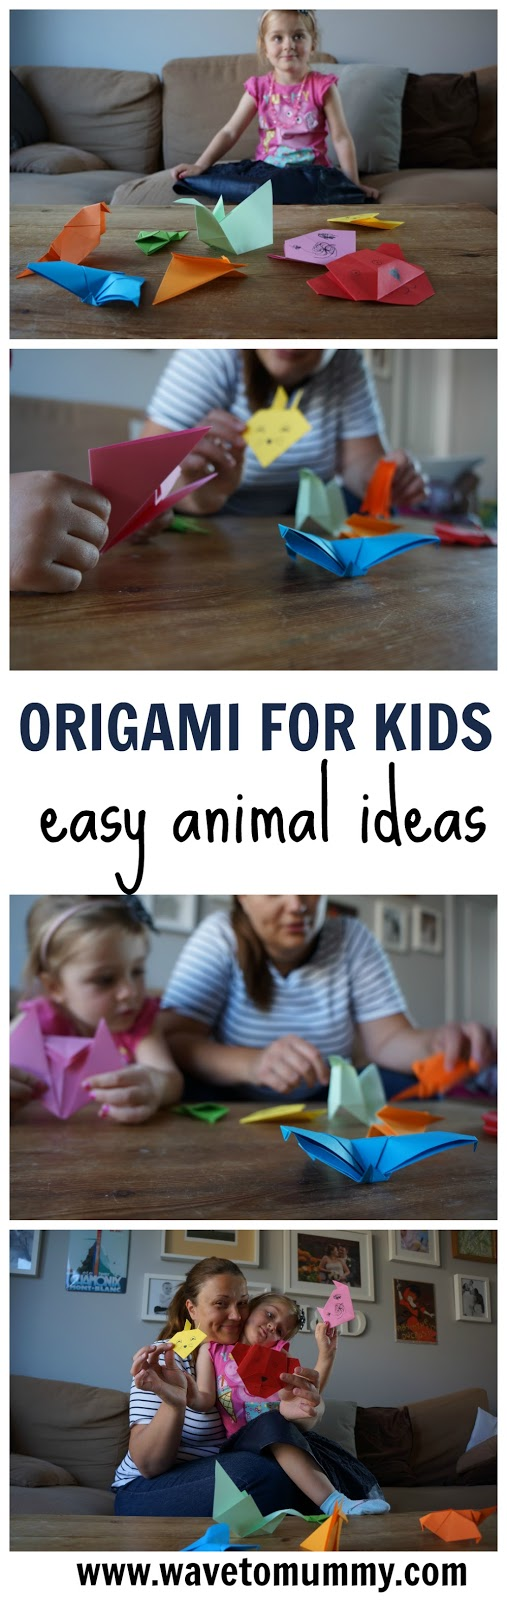 Easy origami ideas for kids - how to make a paper zoo